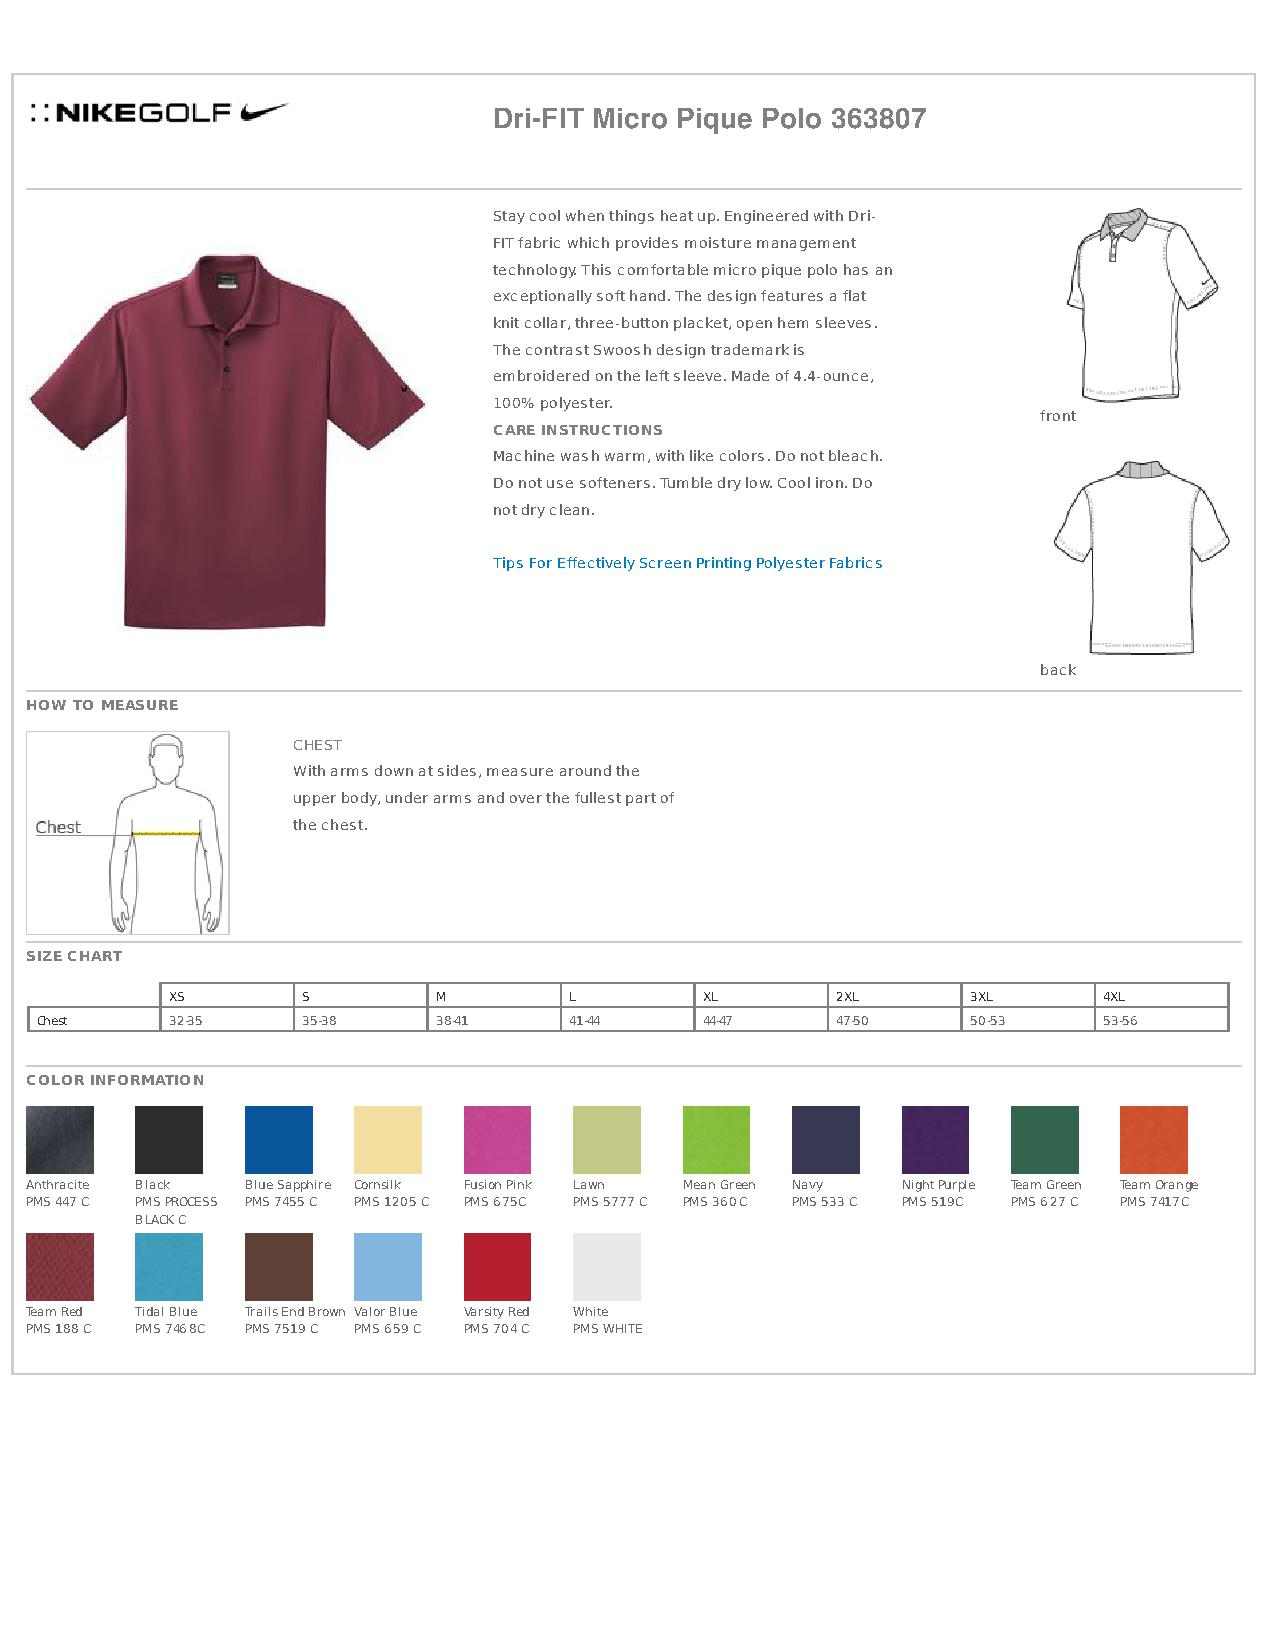 0138a4a3 Popular Designs. custom design of Nike Golf 363807 Dri-FIT Micro Pique Polo